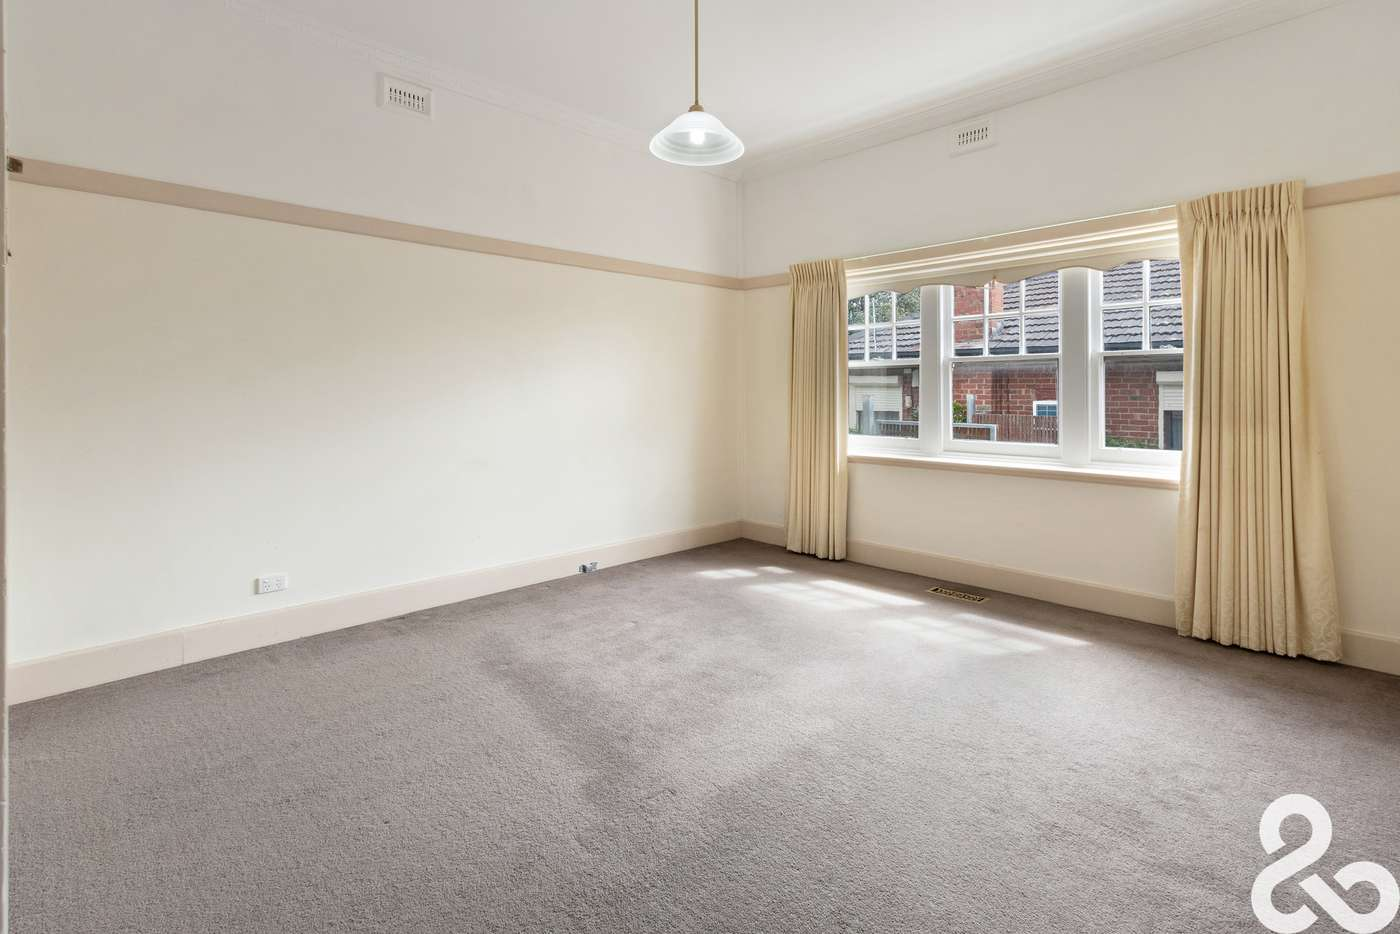 Fifth view of Homely house listing, 10 Howard Street, Reservoir VIC 3073